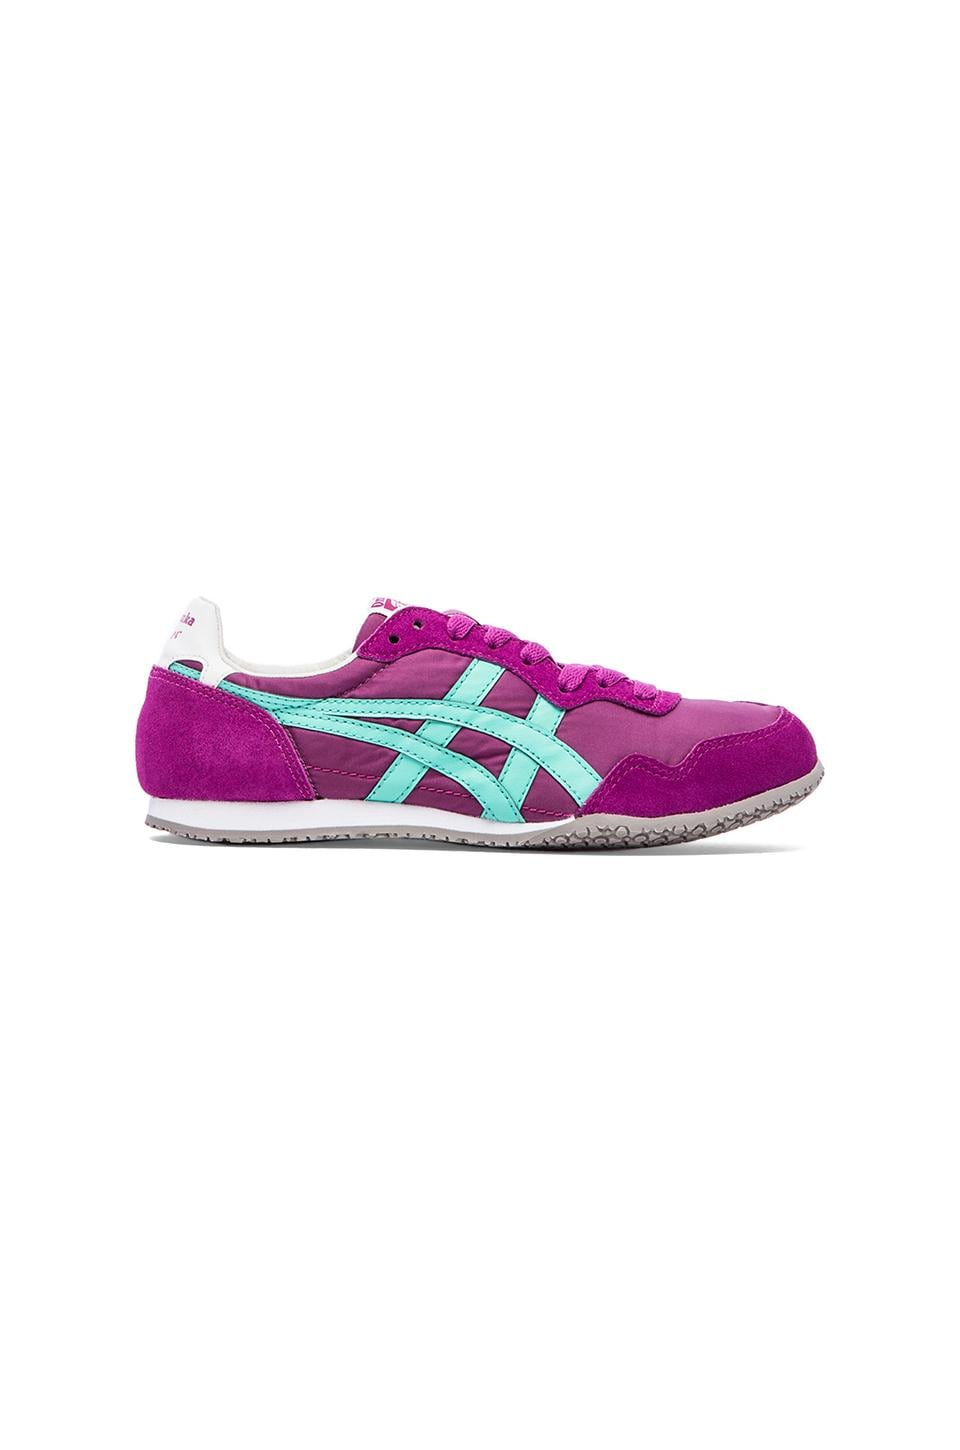 Onitsuka Tiger Serrano Sneakers in Purple & Aqua